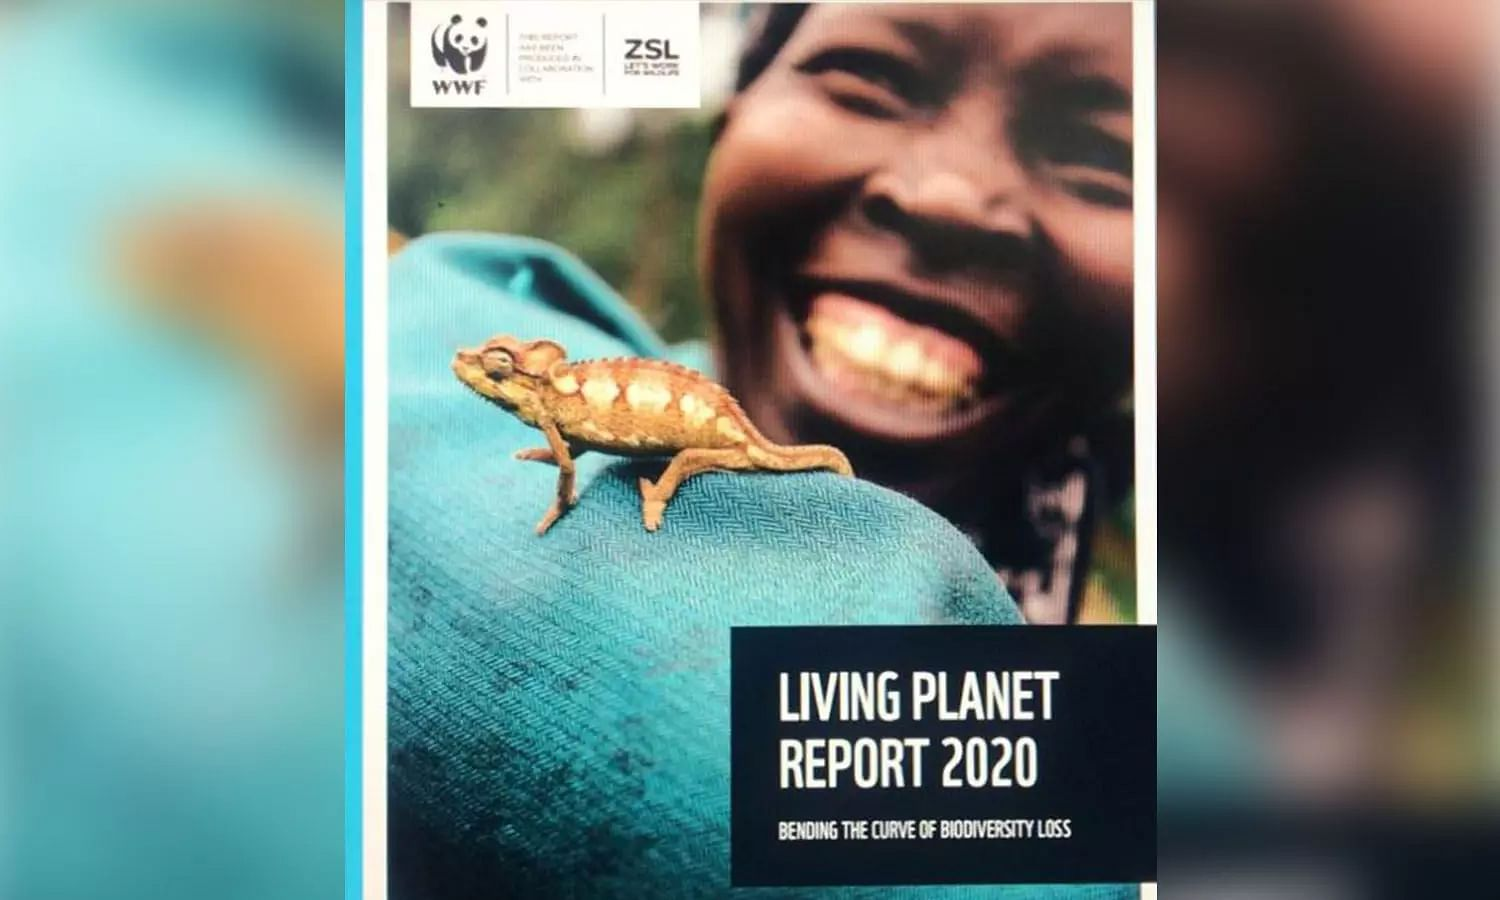 Wildlife Population dips by 68% in 46 years, bold efforts needed to reverse trend: WWF Report